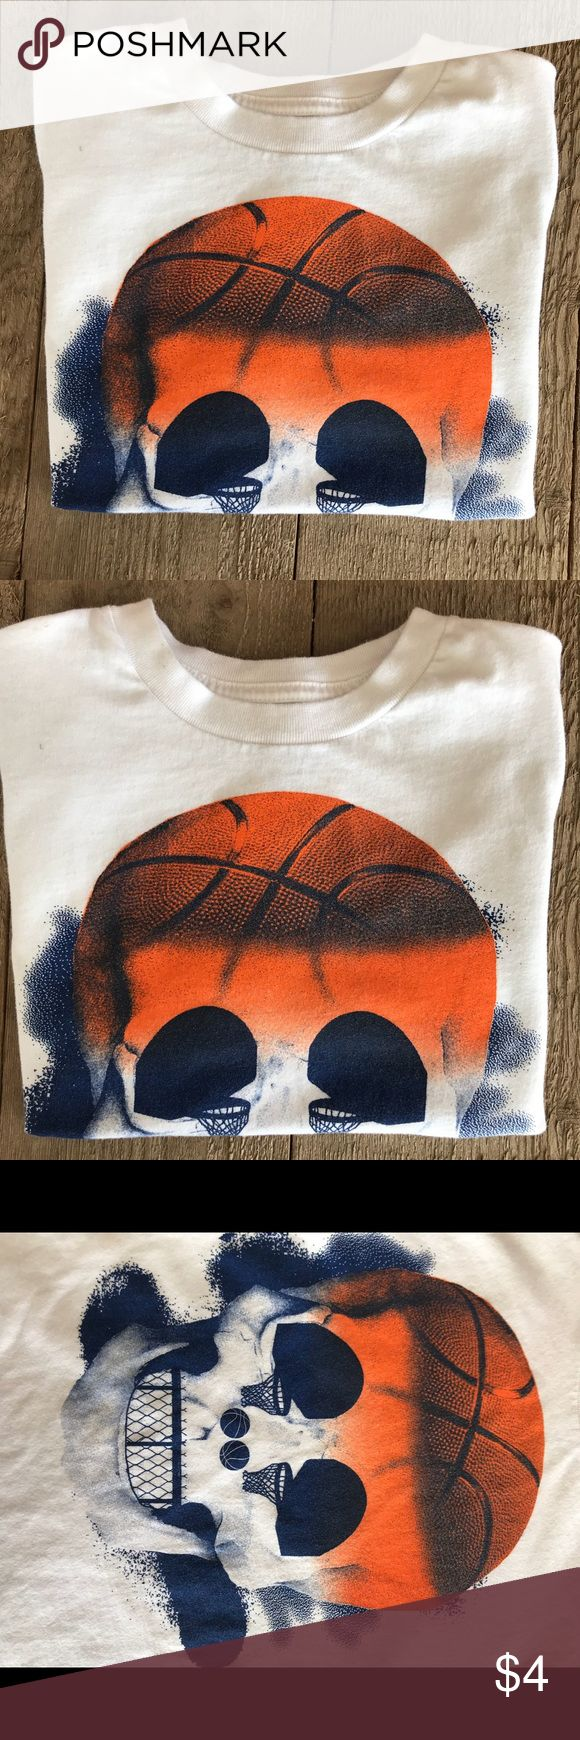 Boys Skull 💀 and basketball 🏀 shirt. Boys shirt with skull and basketball hoops. Used but in great condition. Children's Place Shirts & Tops Tees - Short Sleeve